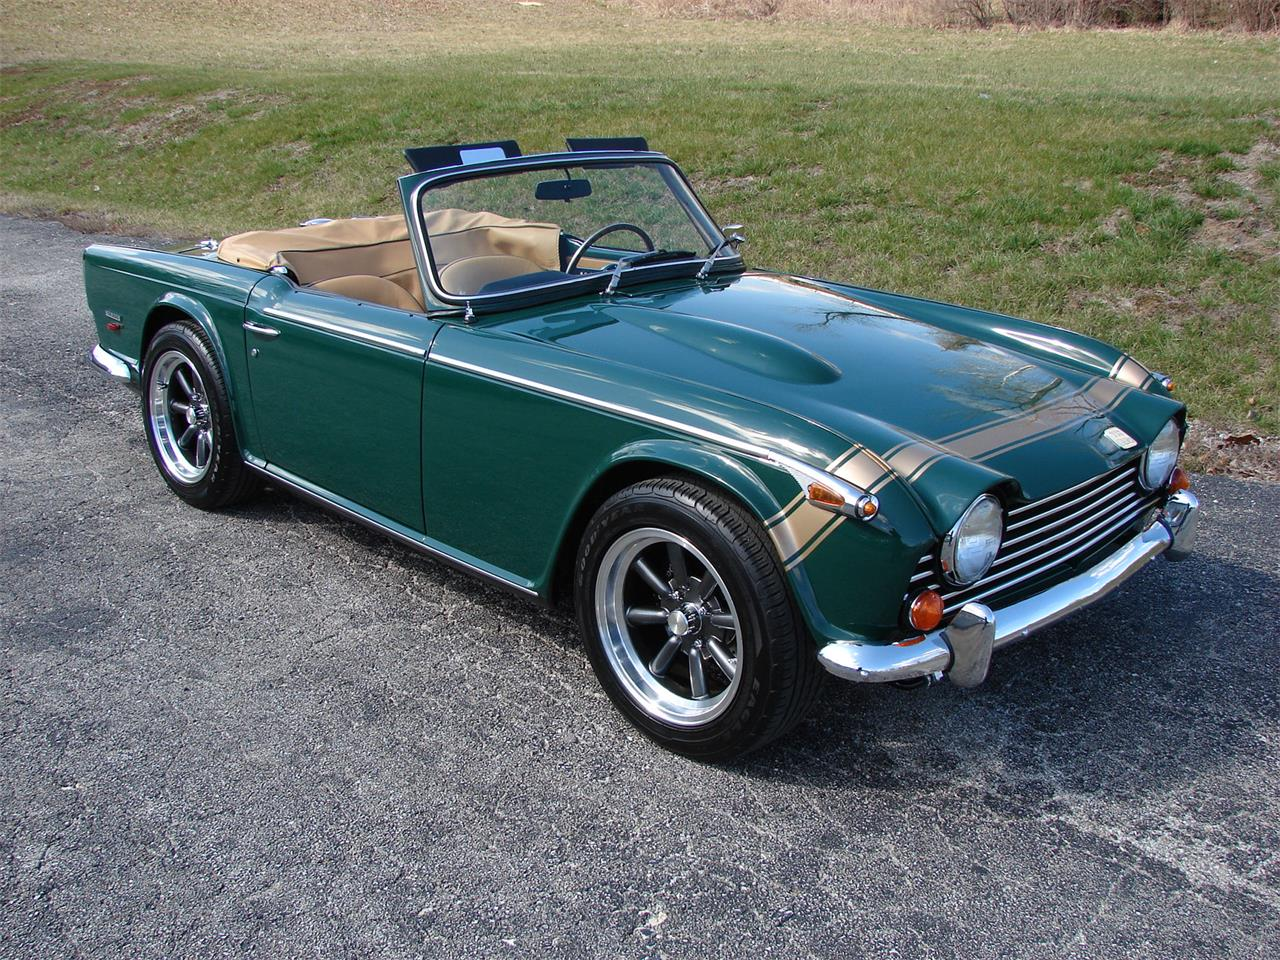 Large Picture of 1968 TR250 - $44,995.00 - N4E5